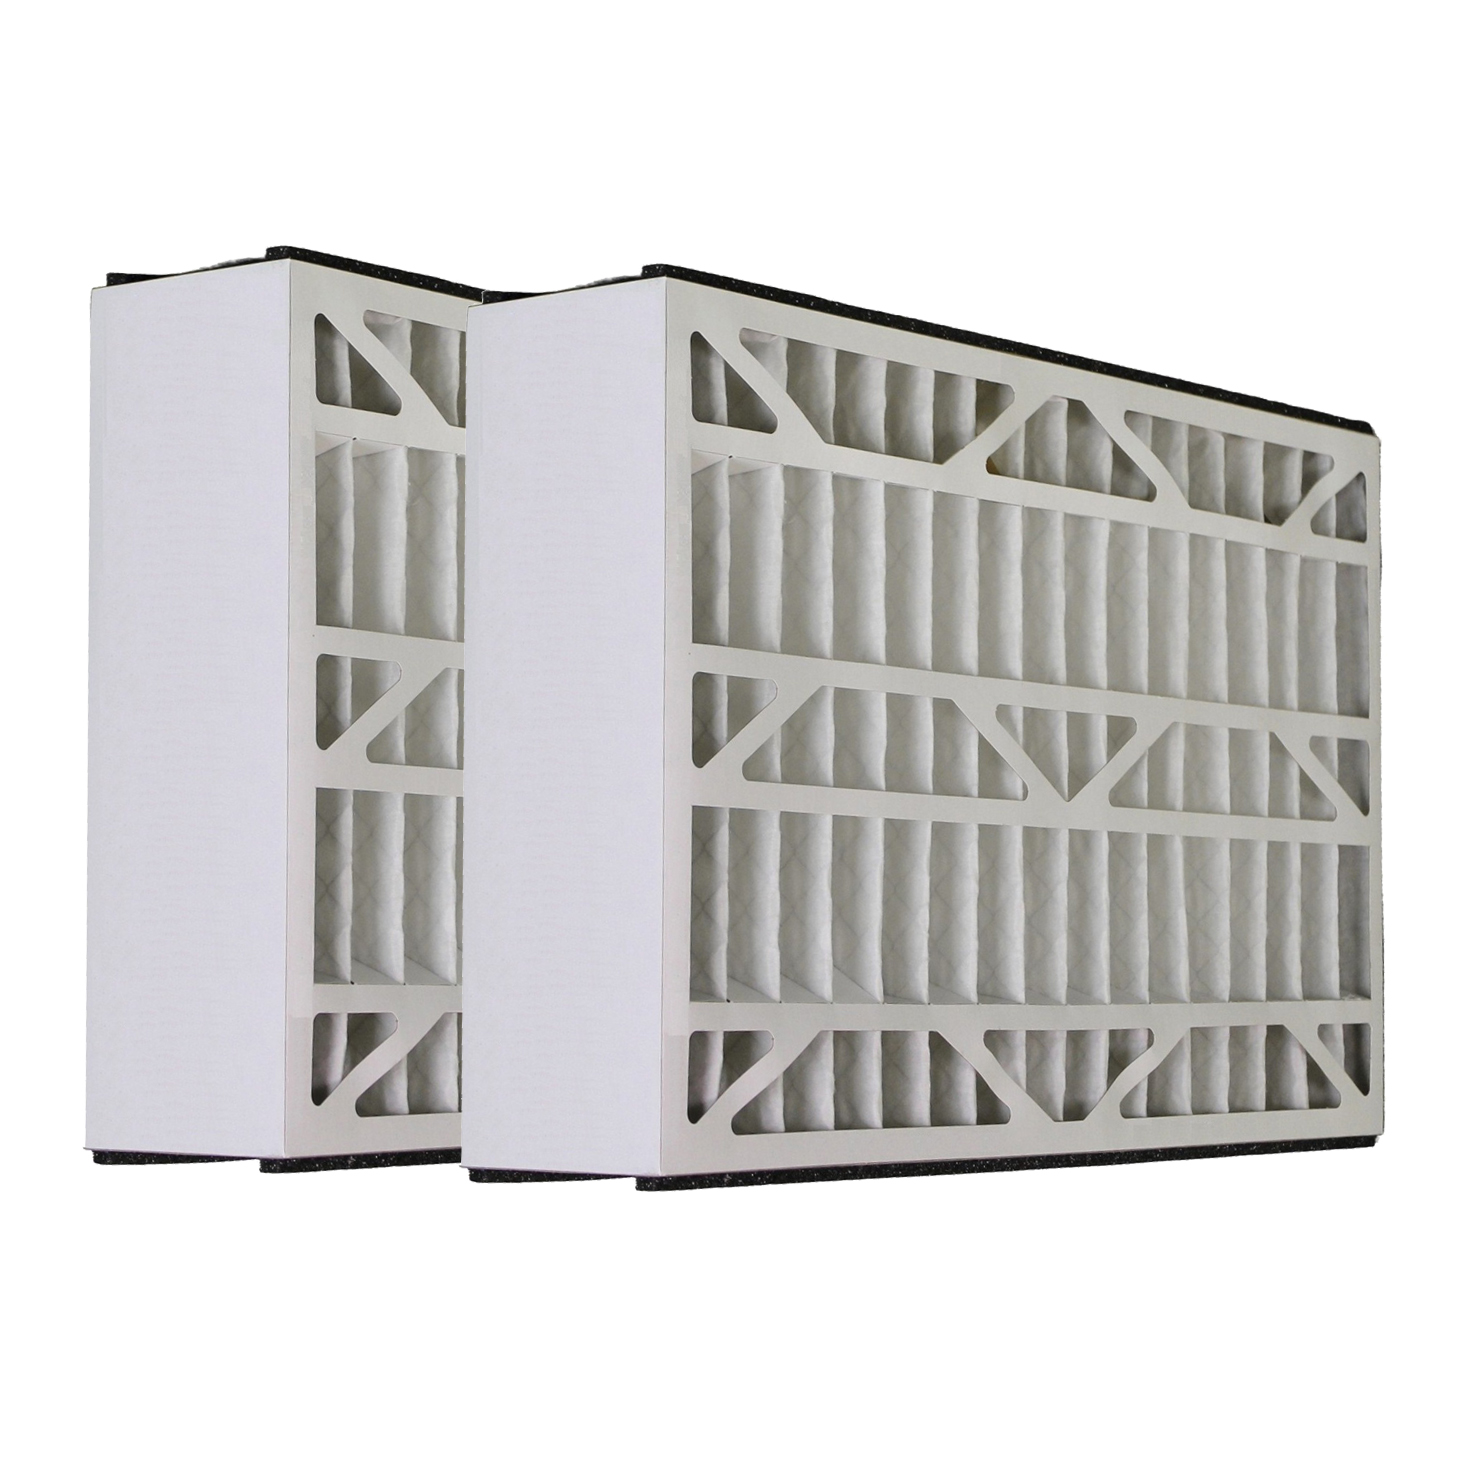 Tier1 Replacement for Skuttle 20x20x5 Merv 11 #000-0448-003 Air Filter 2 Pack